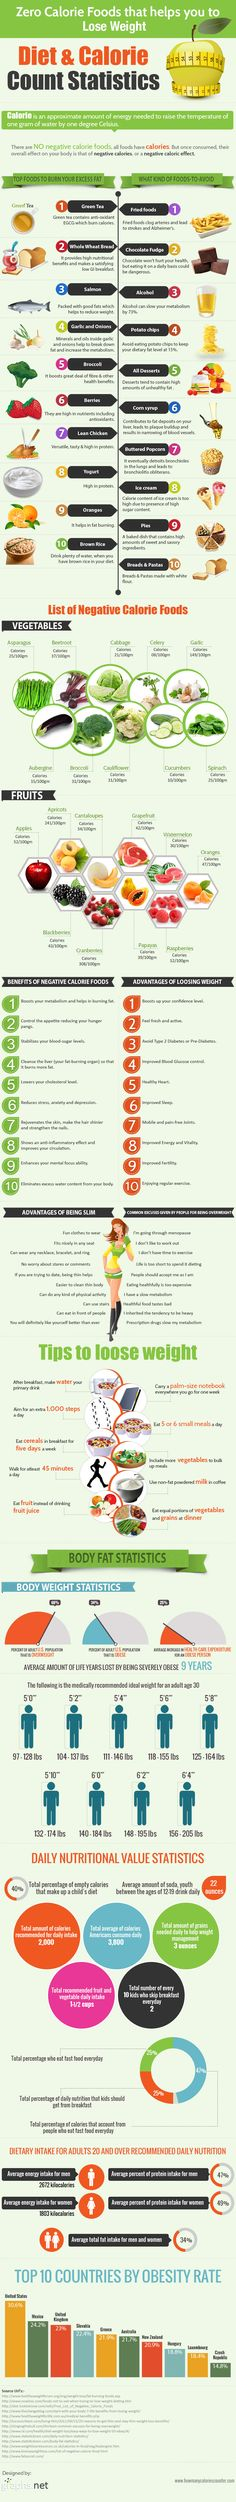 Zero Calorie Foods For weight loss tips and advice try http://losingweighthq.com